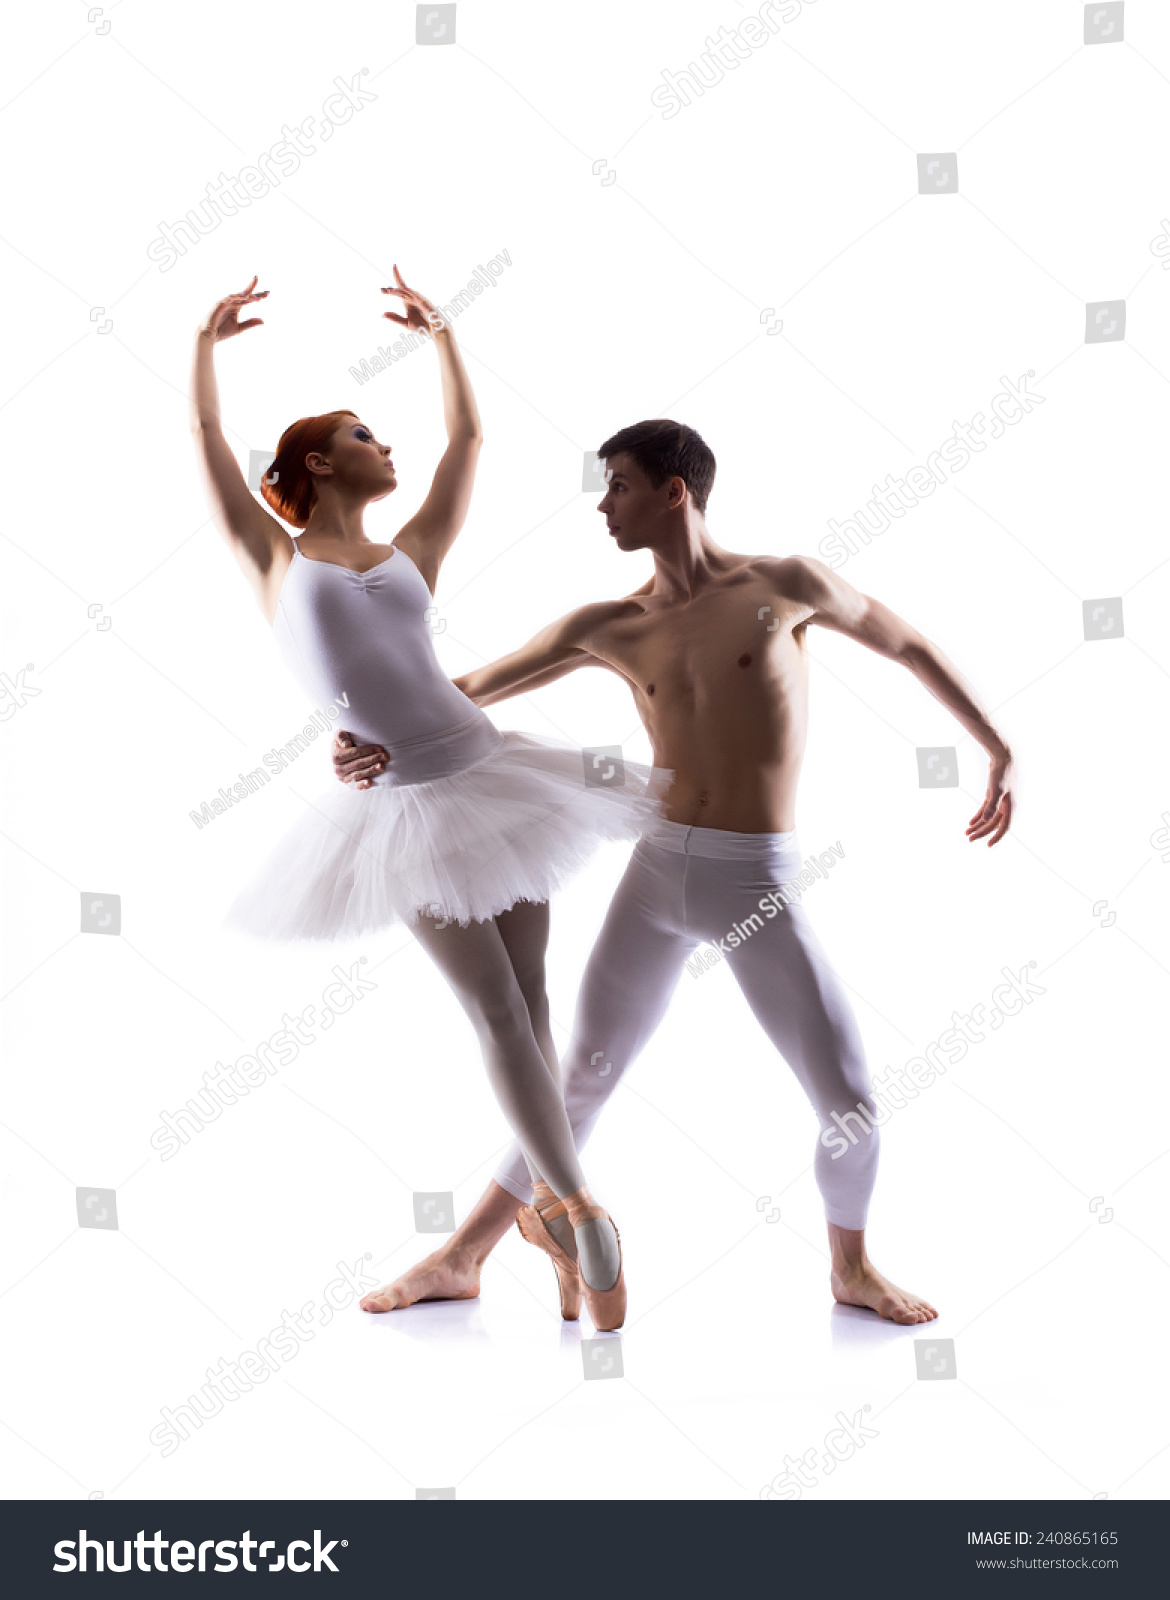 Couple Of Ballet Dancers On A Light Background Stock Photo - Image ...